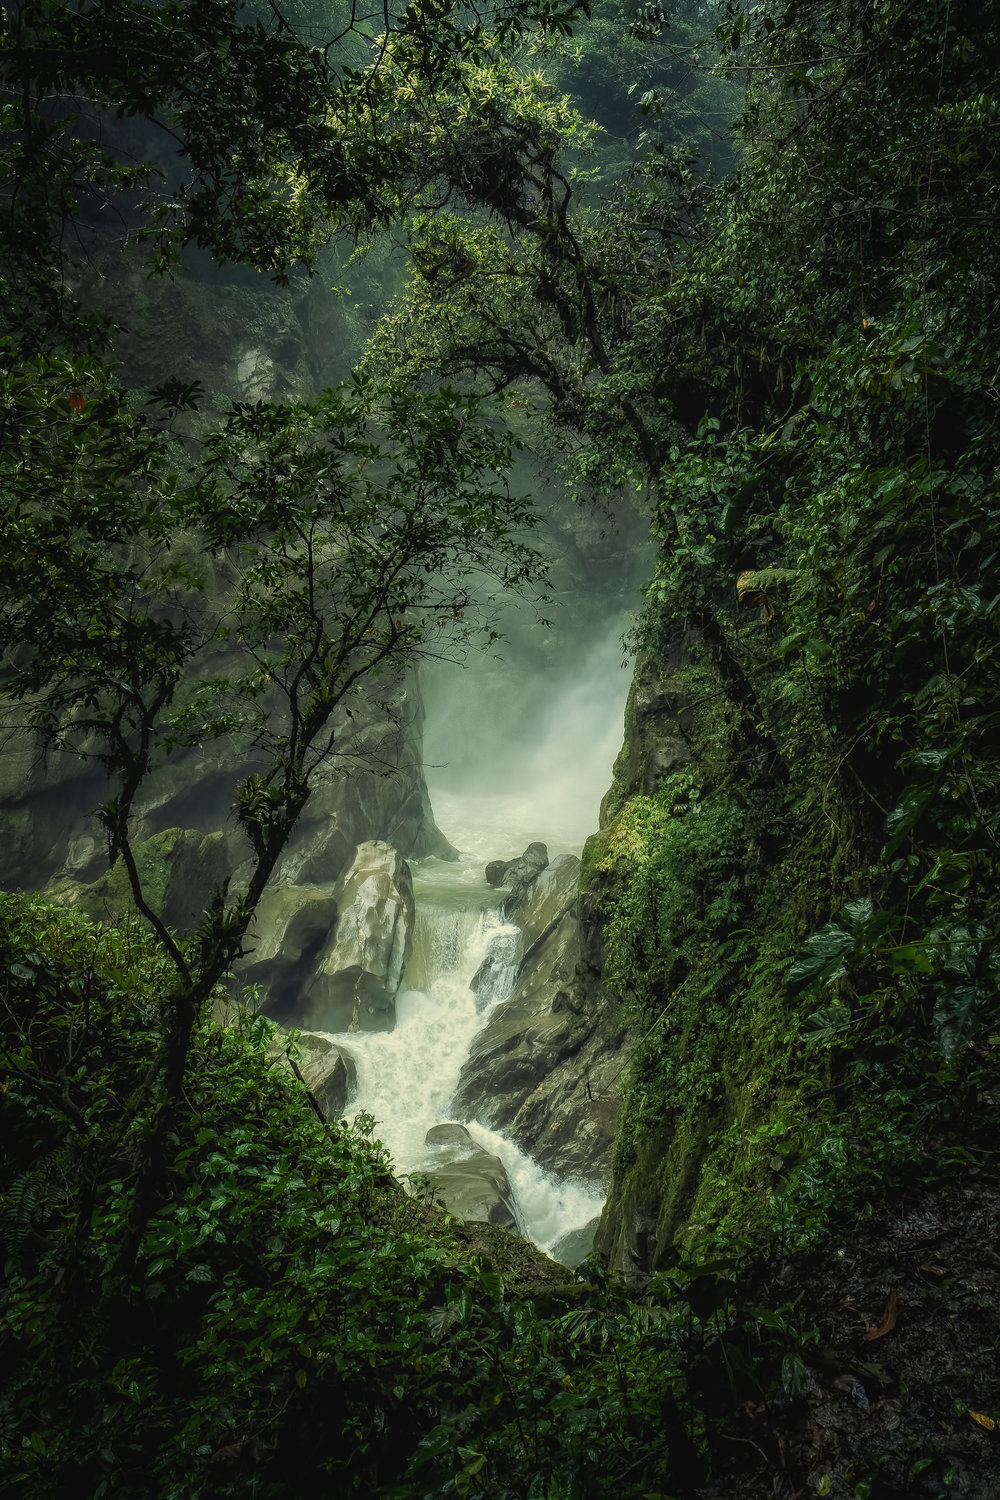 """Pailon del Diablo - Fujifim X-T3, 1/125 @ f/11, ISO 400, 16mm. The Devil's Cauldron! This waterfall is just outside Banos, Ecuador. We were making our way up the trail to the top of the waterfall (you can only see a small portion here) when I spotted this vantage point. The forest canopy was open just enough to offer this fabulous view of the falls. You can actually go behind the waterfalls """"Last of the Mohicans"""" style. It was raining hard that day so I was caught between my desire to get the shot in a photo rich environment and protecting my equipment. I took some risks!"""